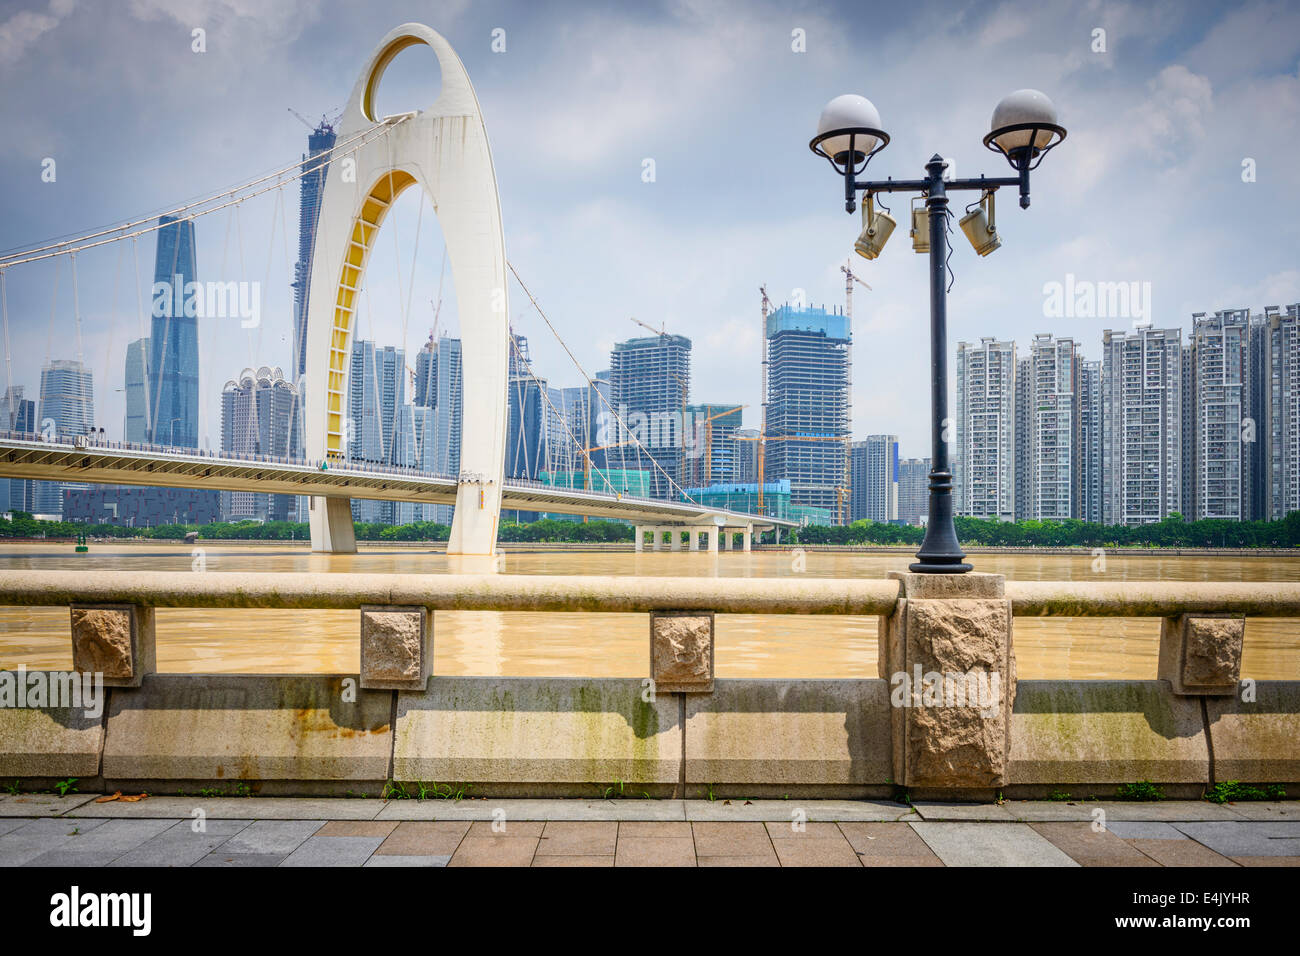 Guangzhou, China cityscape on the Pearl River. - Stock Image